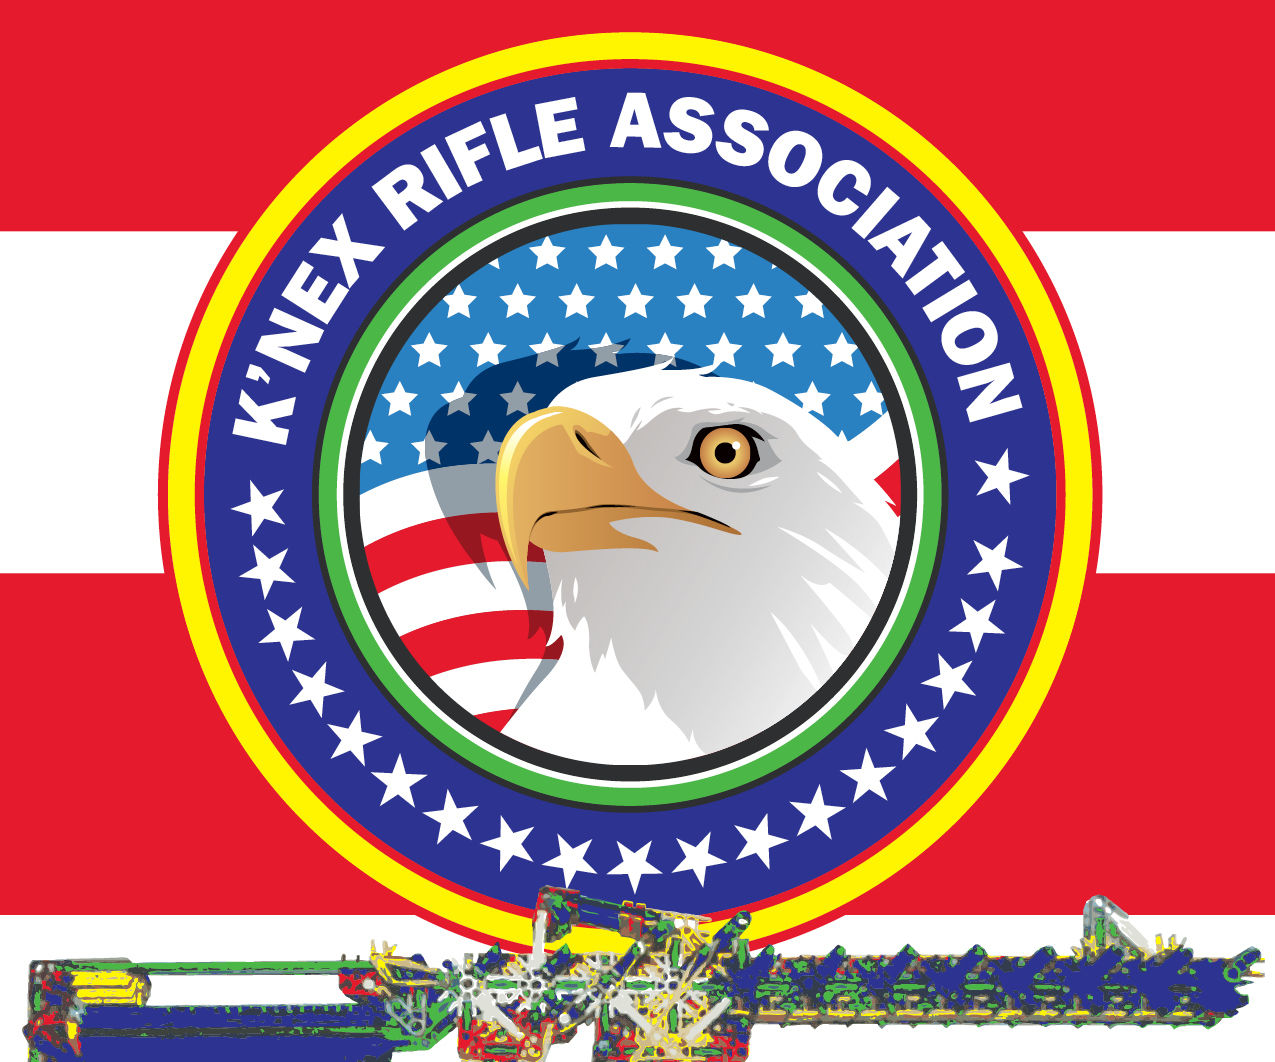 Who wants to join the KRA [Knex Rifle Association